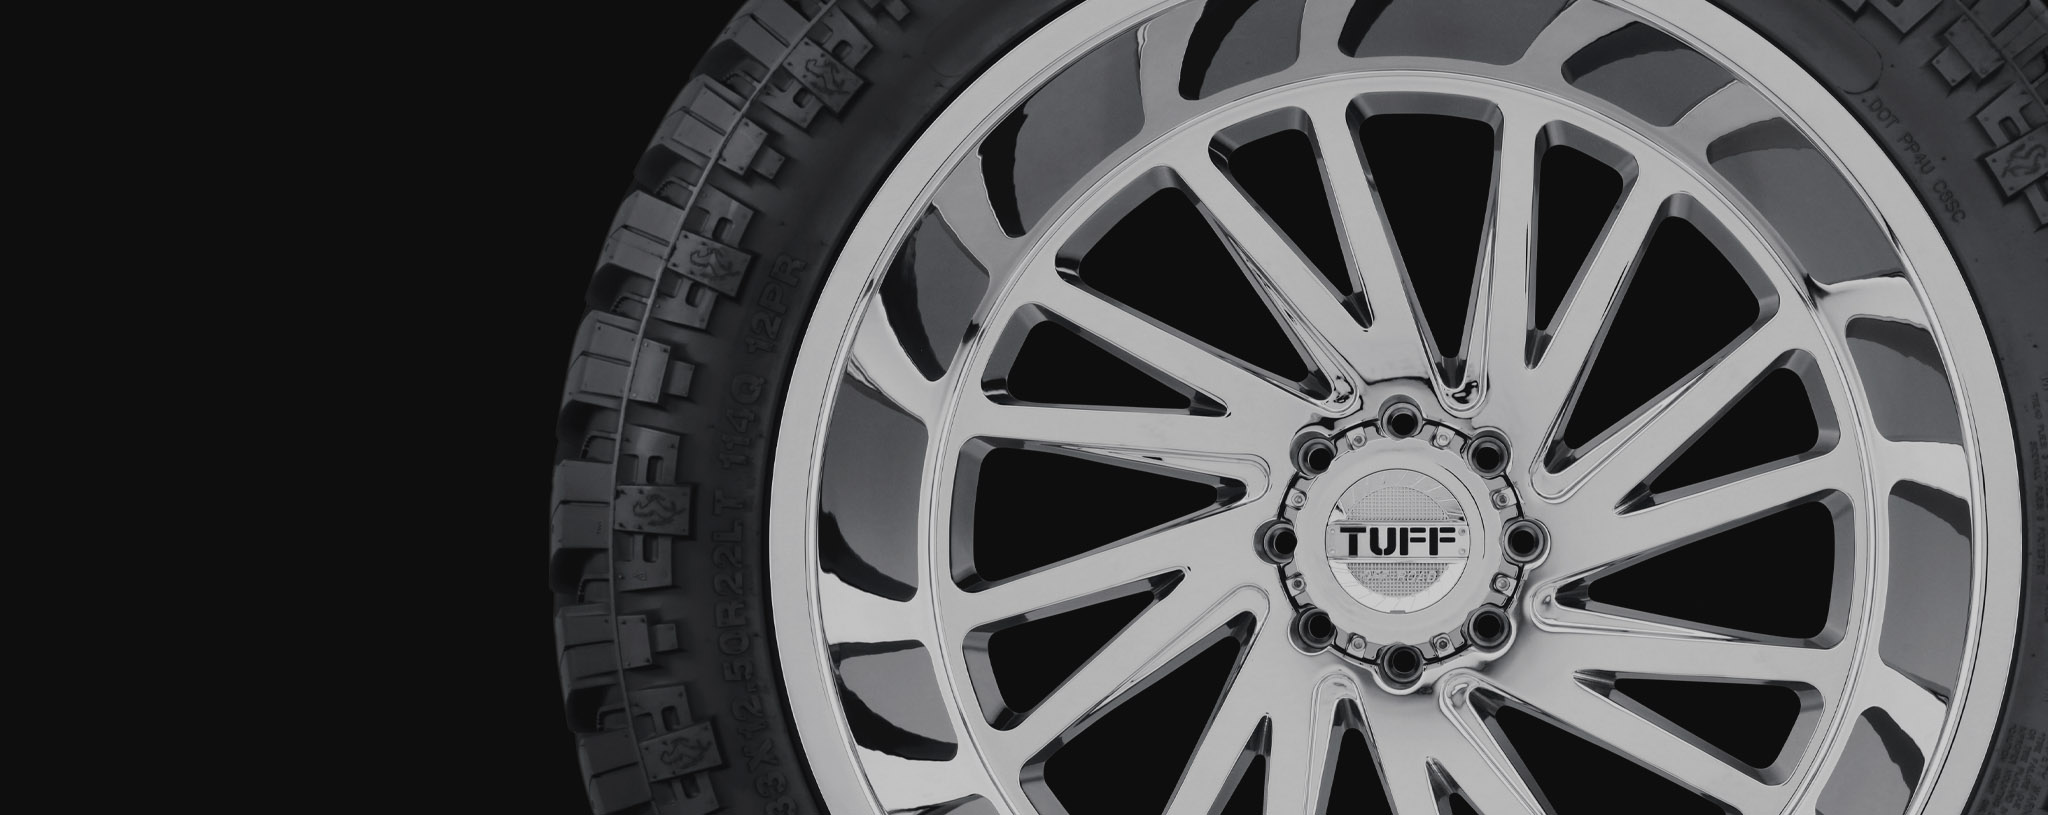 Jeep Wrangler Black Matte >> Off Road Wheels | Truck Wheels and Rims by Tuff Wheels